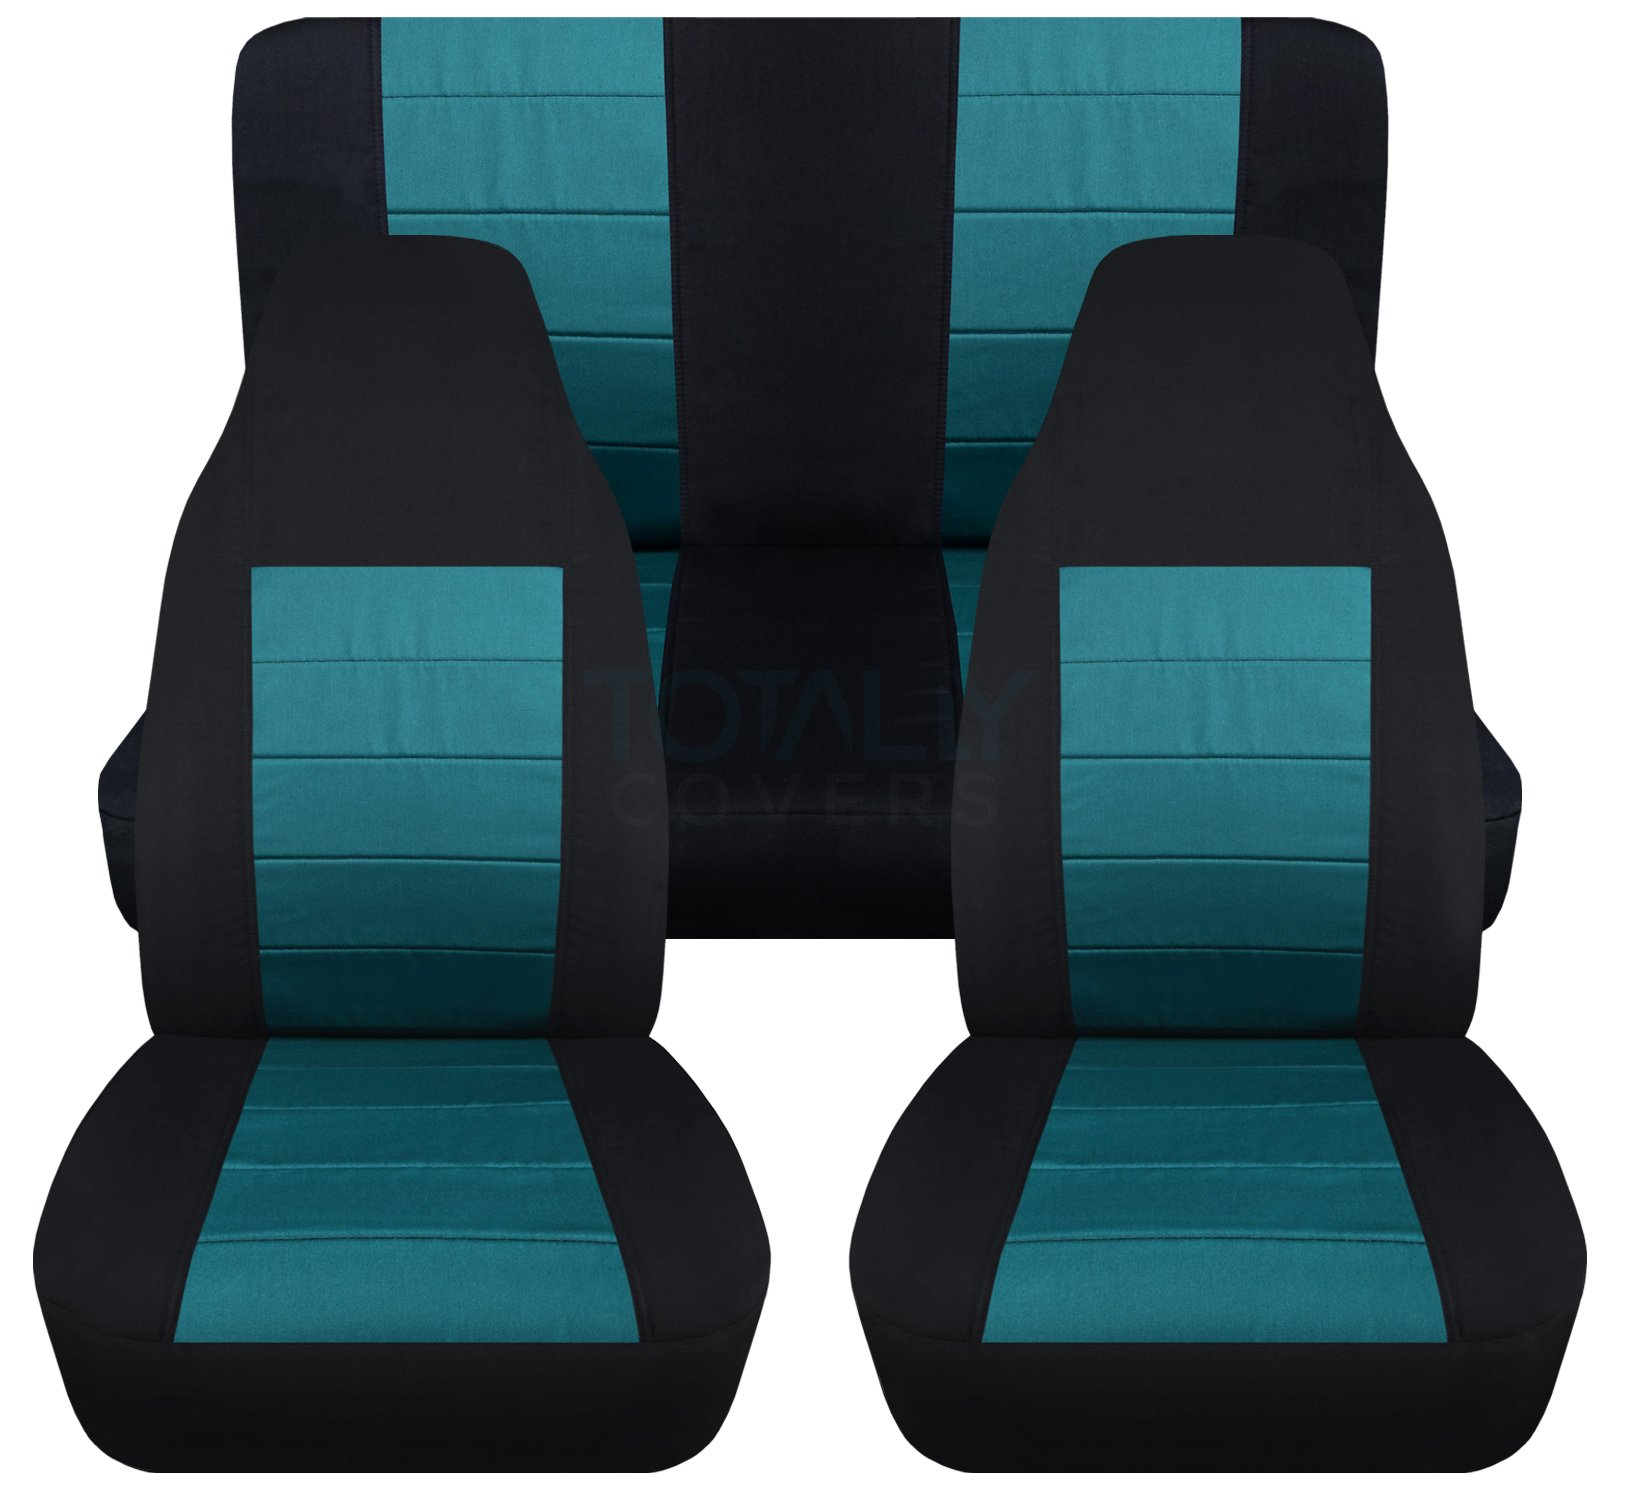 2-Tone Car Seat Covers: Black and Teal - Universal Fit - Full Set - Front Buckets & Rear Bench - Option for Airbag/Seat Belt/Armrest/Release/Lever/Split Compatible